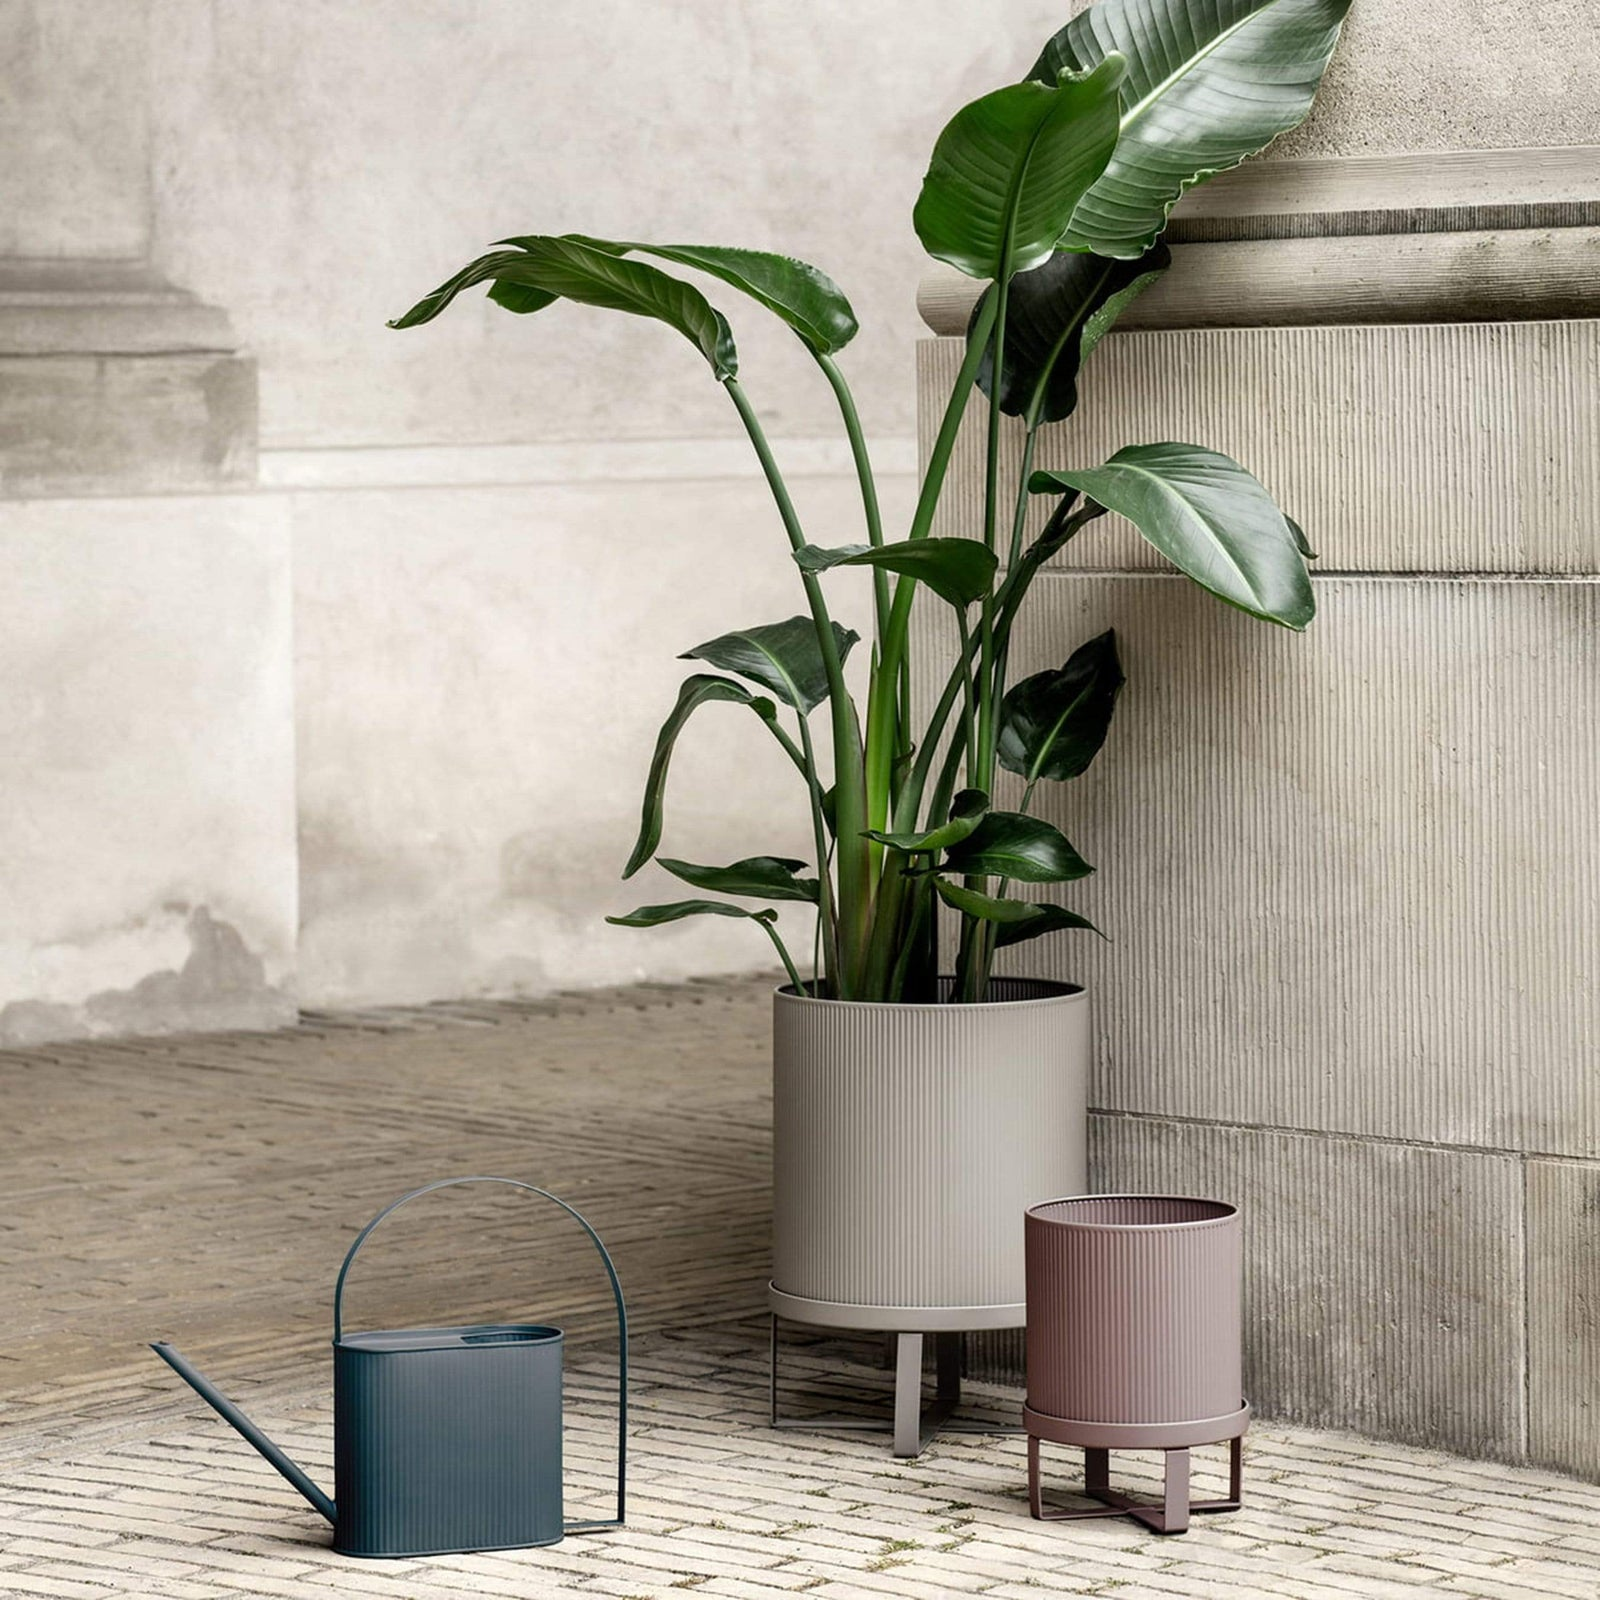 Ferm Living Garden Bau Pot, Small